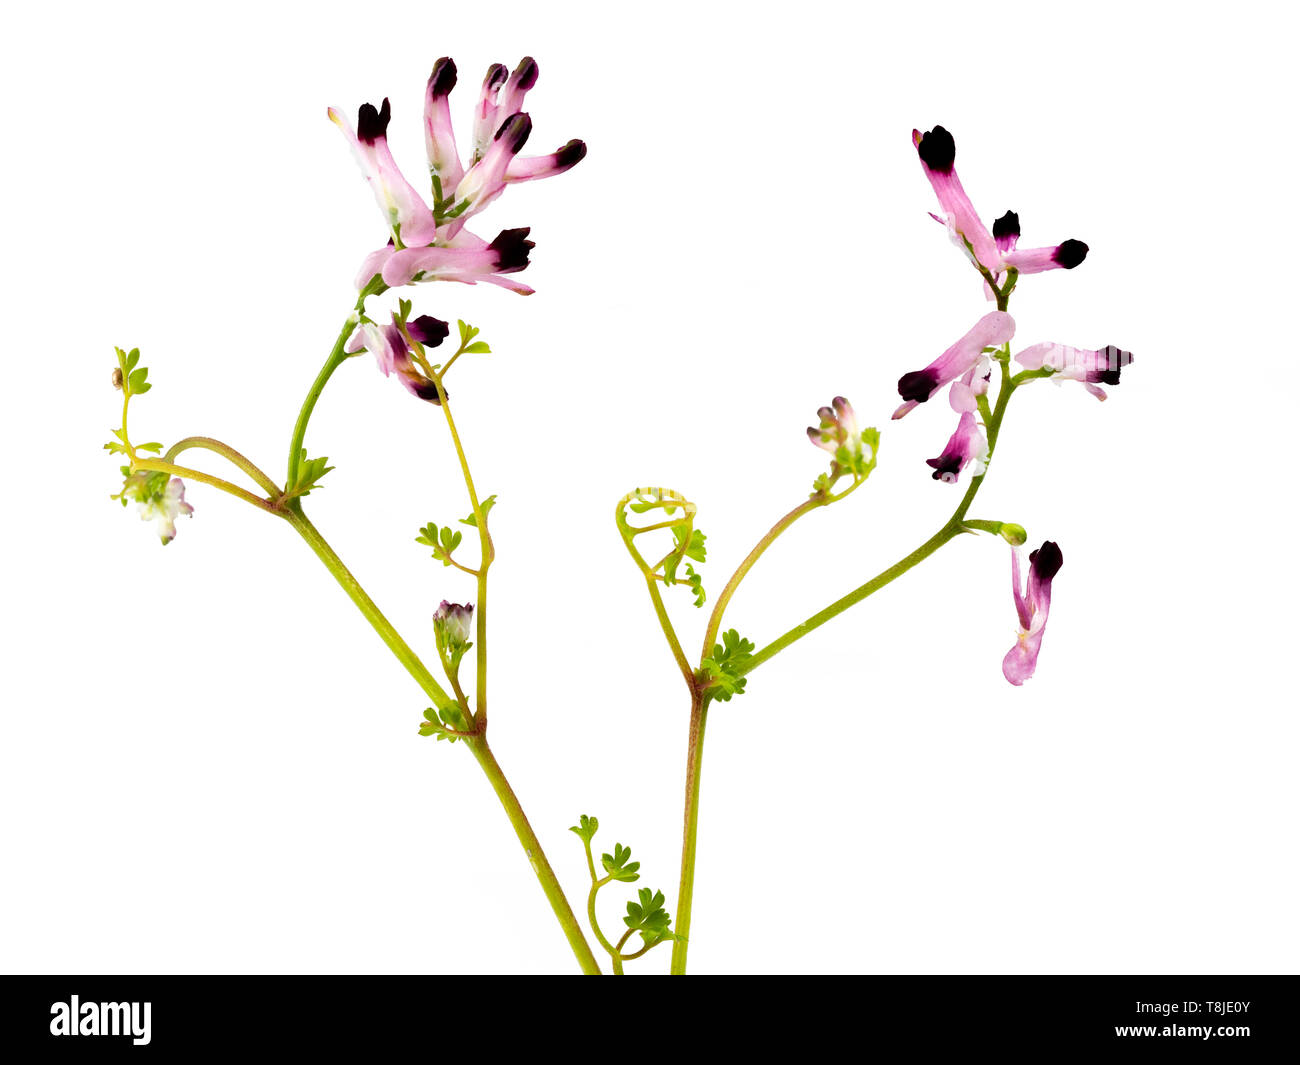 Delicate maroon tipped white flowers of the UK wildflower and annual weed, common ramping-fumitory, Fumaria muralis, against a white background - Stock Image